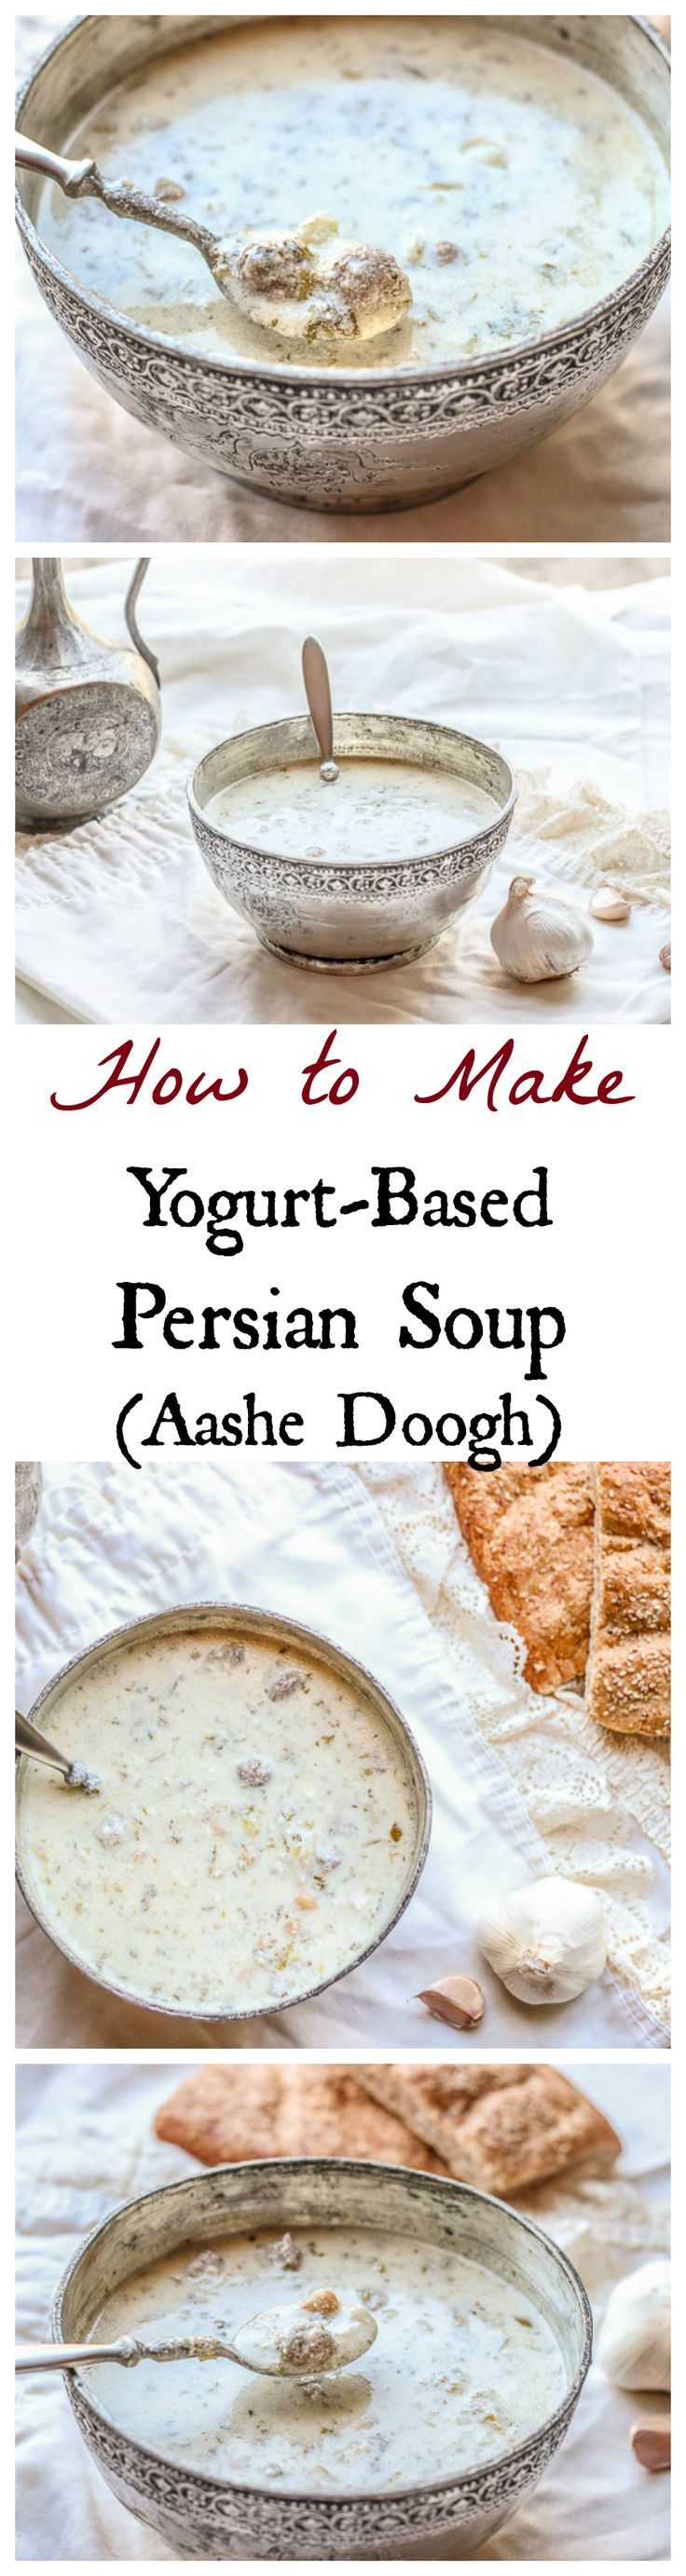 This authentic Azeri Persian comfort soup is SO good and healthy. Easy to make too! #persianfood